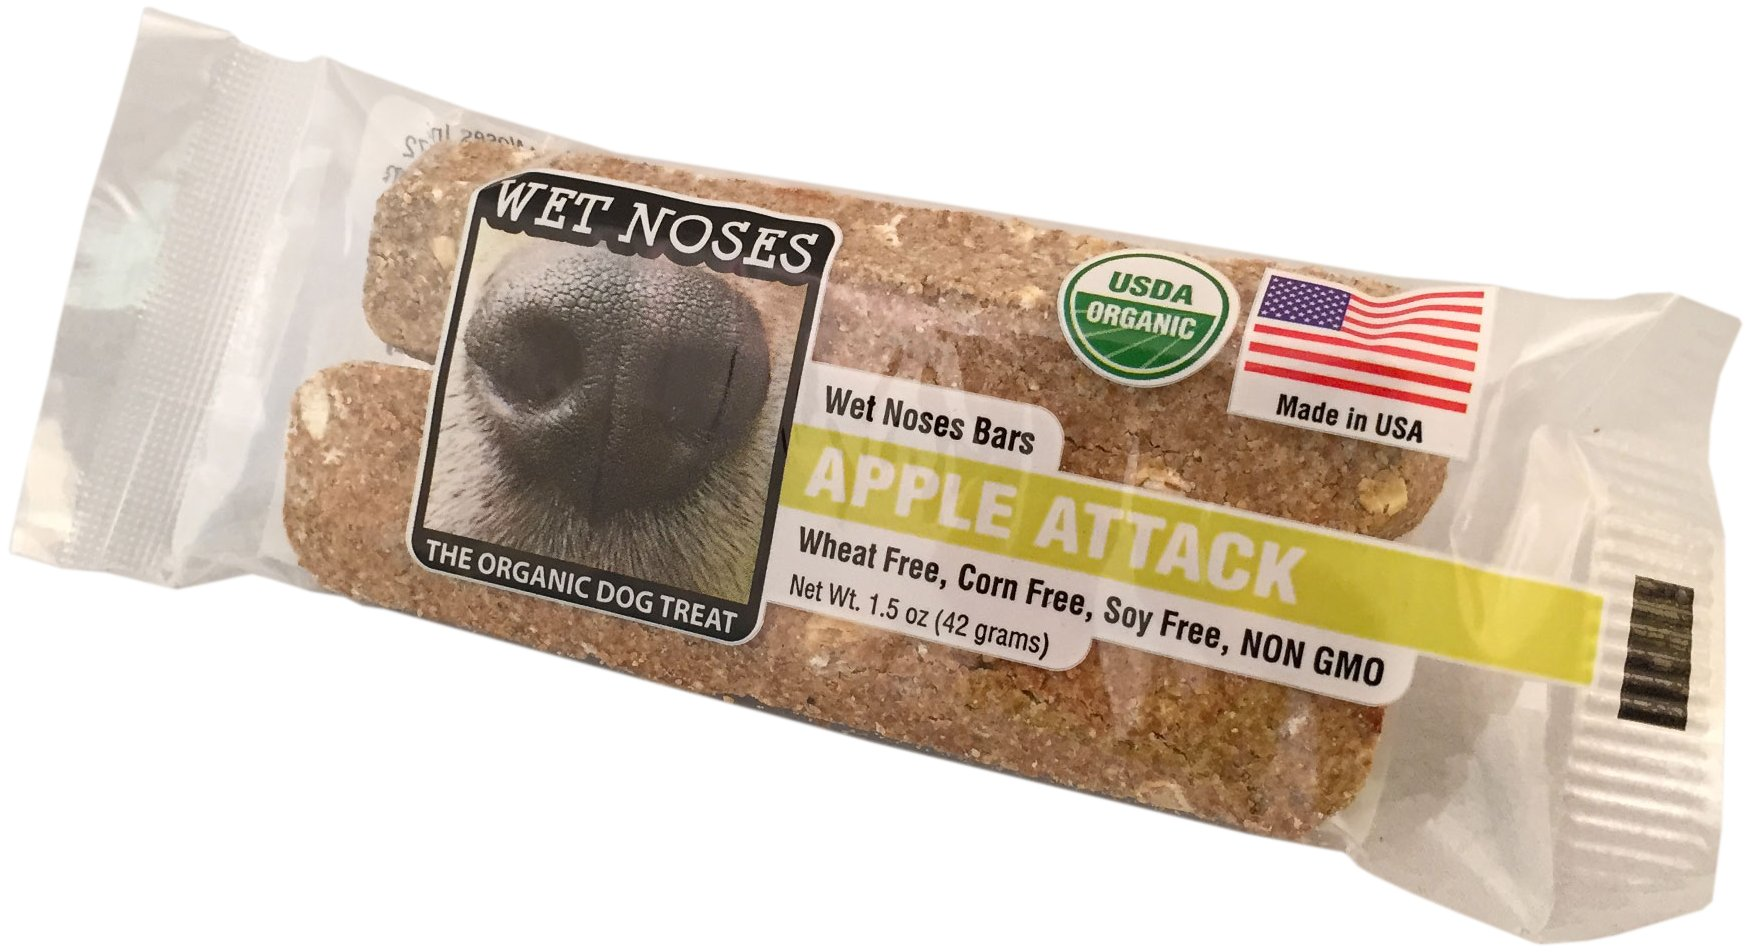 Wet Noses Apple Attack Bar Dog Treat